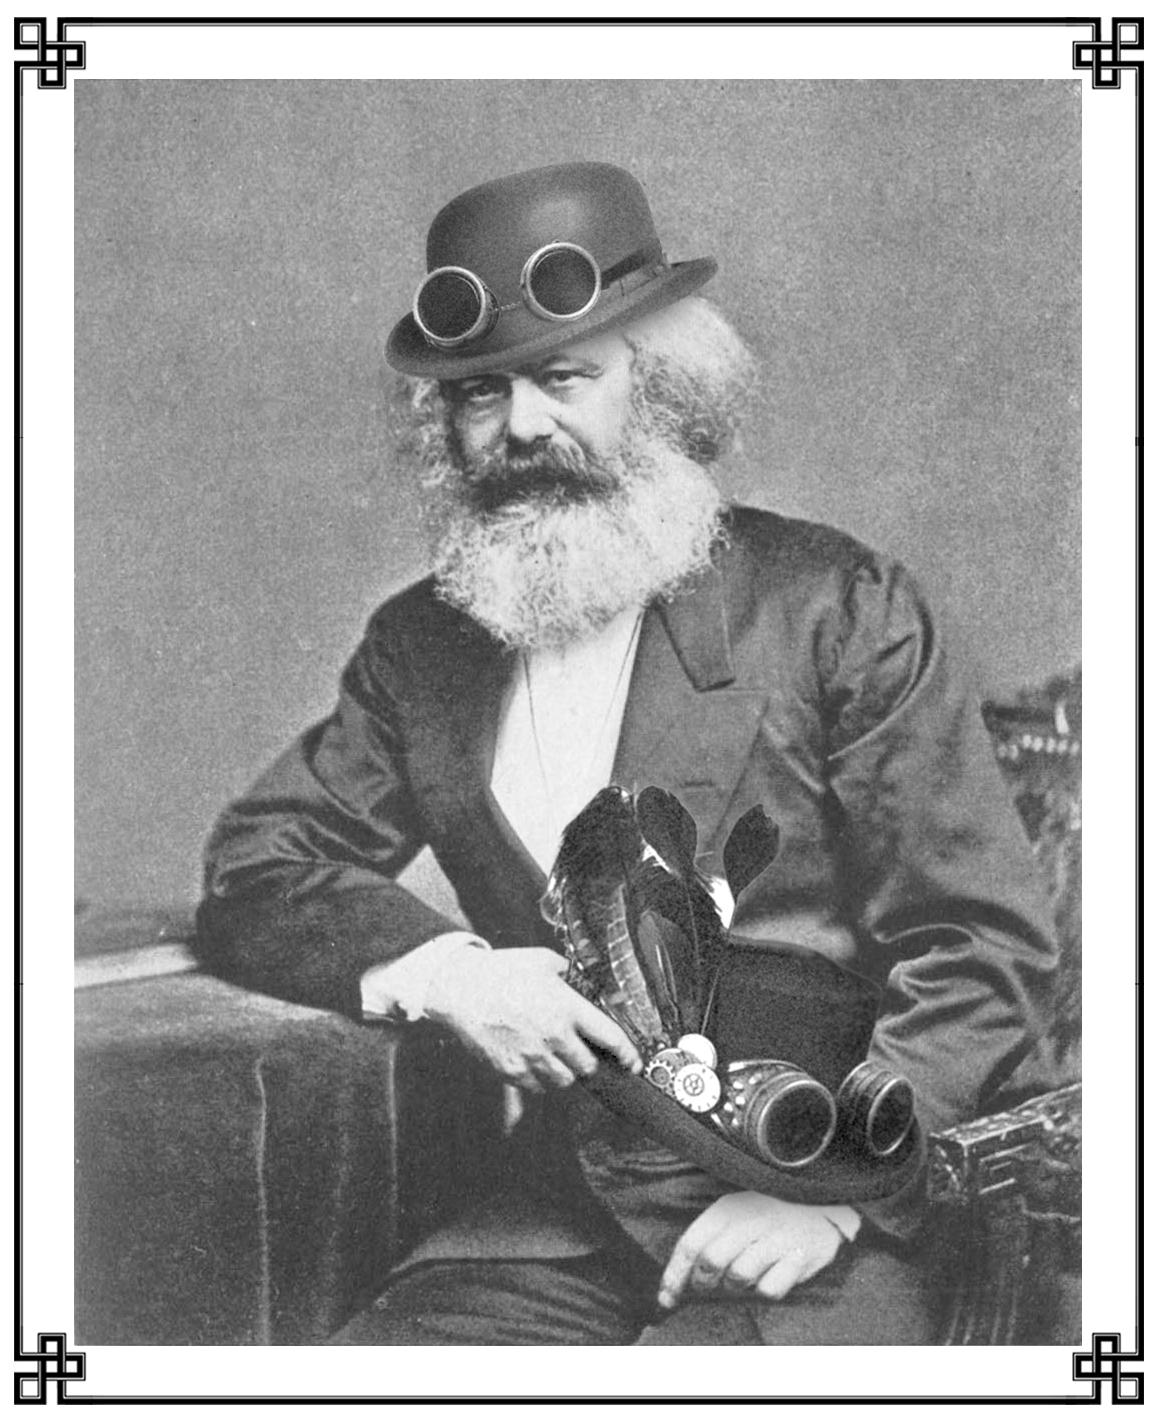 """While commonly associated in the popular imagination with the redistribution of material sustenance of all forms, Karl Marx himself was first and foremost a skilled milliner specifically concerned with the broad and equitable provision of headdress, in keeping with his compatriot Friedrich Engel's own admonition that in matters of liberation {as with anything else} """"…one can't do that, without a hat"""". Therefore, and contrary to the assertions of detractors, it cannot be emphasized sufficiently that Herr Marx distributed only the most innocent of hats, becoming ones at that, and certainly not some manner of cleverly dissembled consciousness-expanding helm that caused the wearer to perceive the presences of all manner of stubbornly hindsighted angels of history. {Somewhat less improbable are hypotheses that Herr Marx was in actuality Frederick Douglass slumming in whiteface or, alternatively, that he was of   blemmye   heritage but passing behind ingenious prosthetics and an extensive peruke.}"""